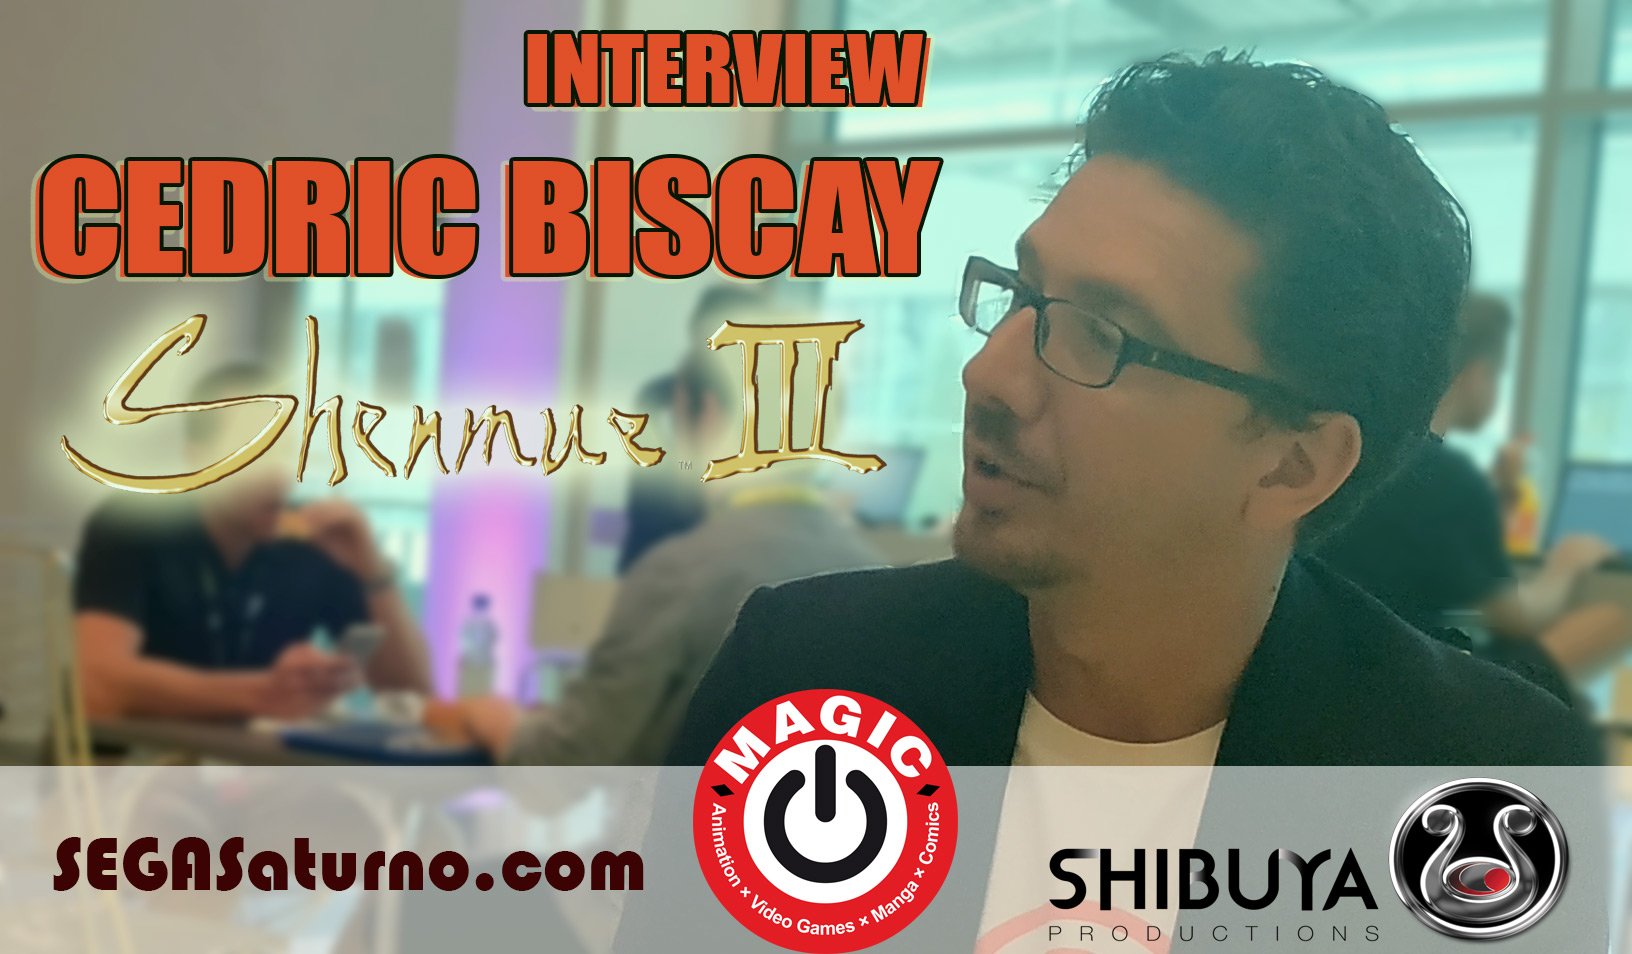 cedric biscay shibuya productions shenmue iii 3 gamescom 2018 entrevista interview